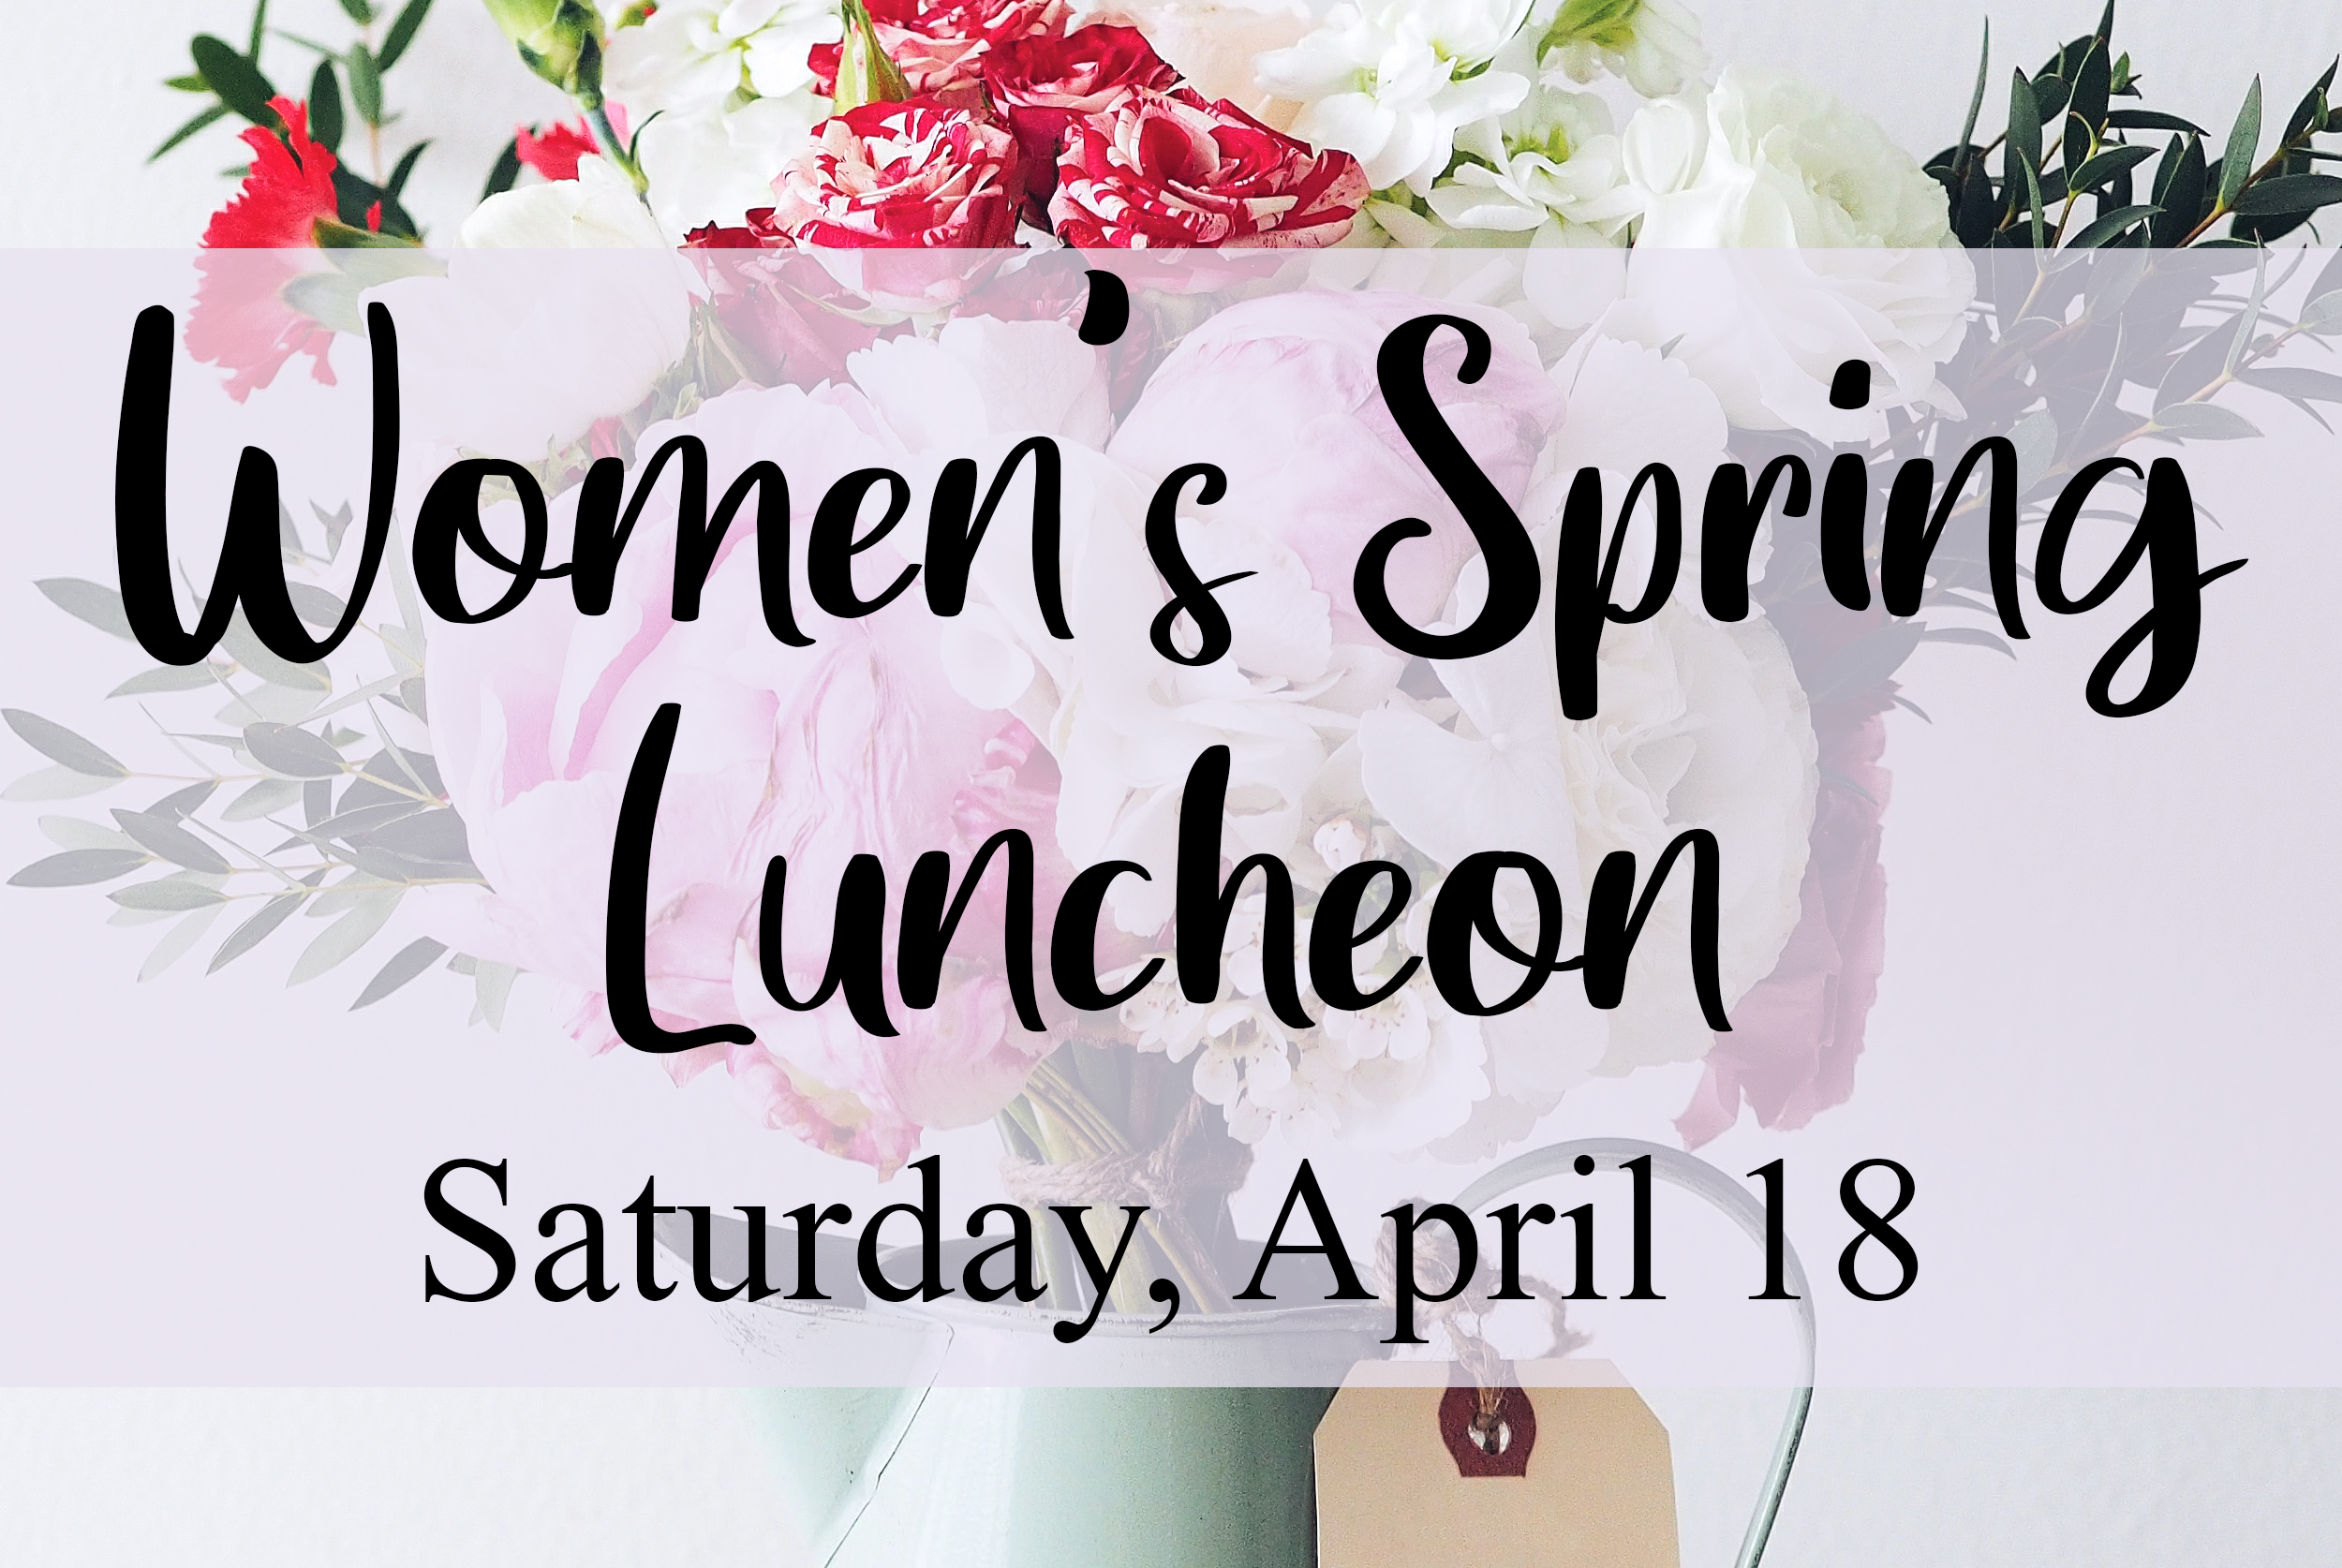 Women's Spring Luncheon announcement event image